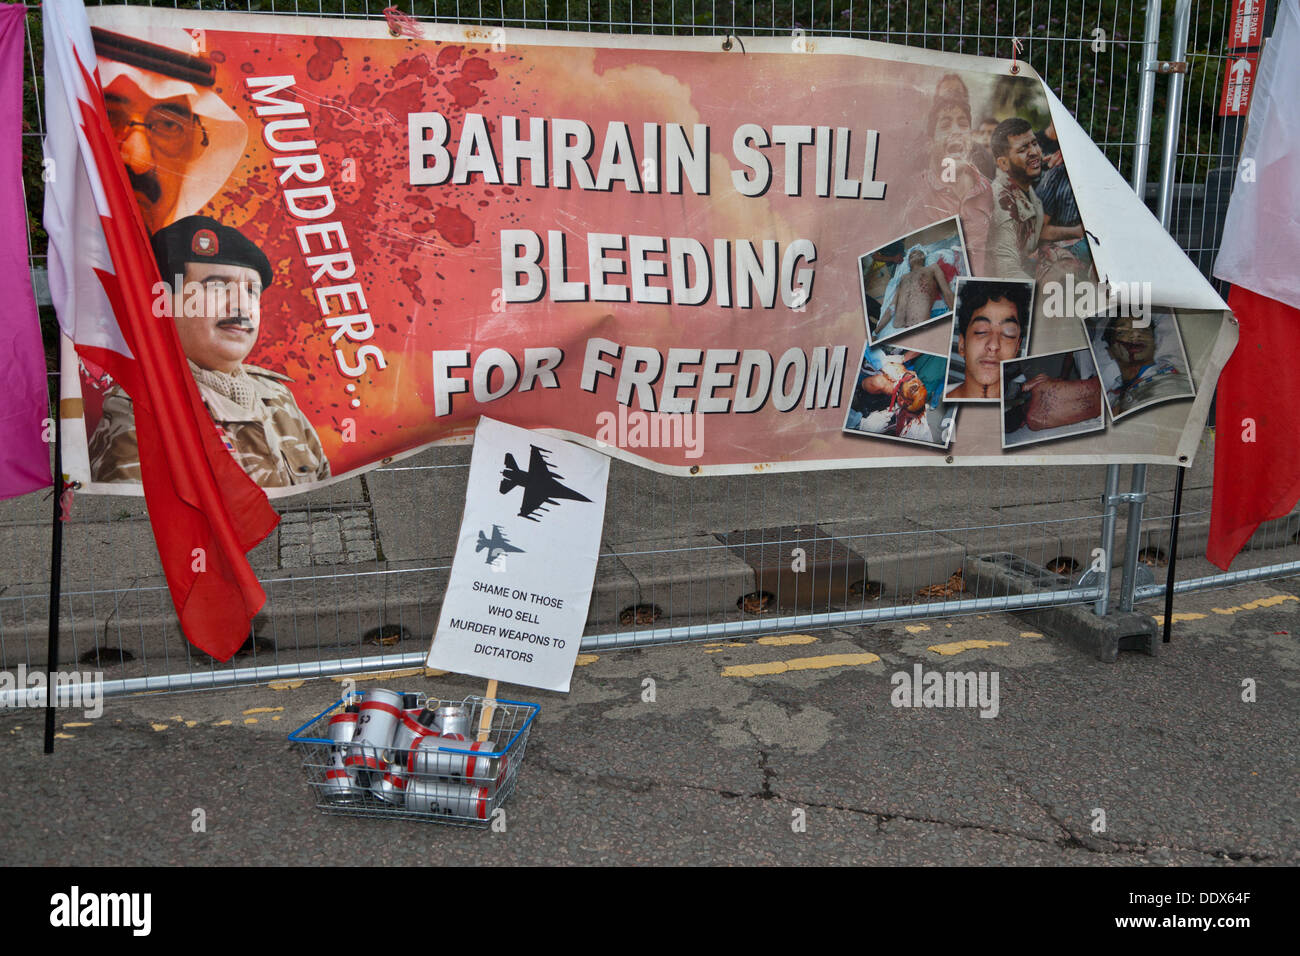 London, UK. 8th Sep, 2013.  Anti arms protestors block entrances to the Excel Centre where  the Defence Security Stock Photo